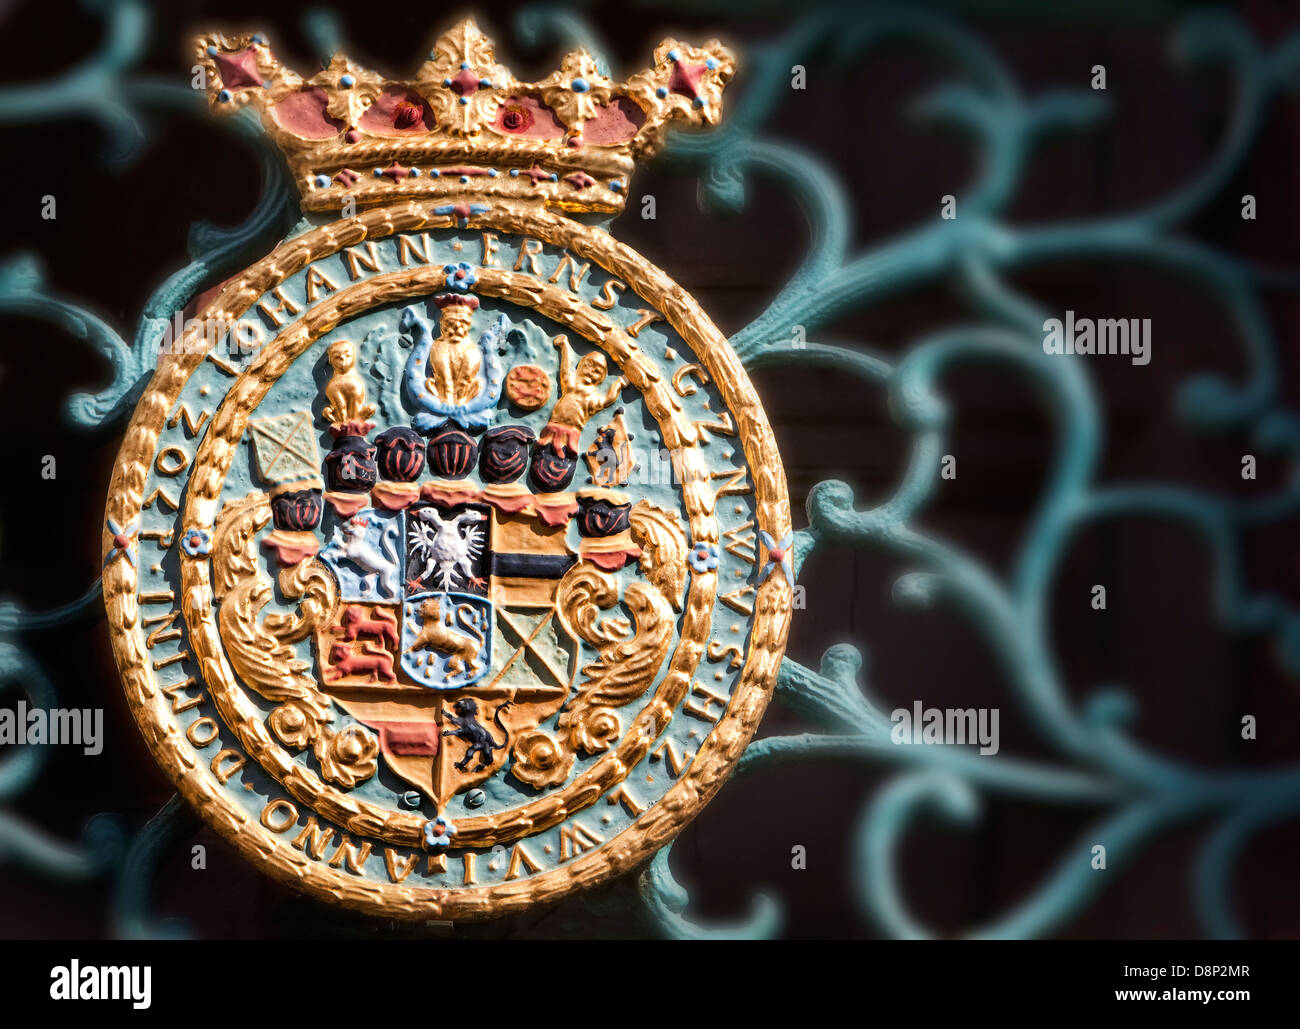 Coat of arms, Schloss Weilburg Castle, Weilburg an der Lahn, Hesse, Germany, Europe - Stock Image